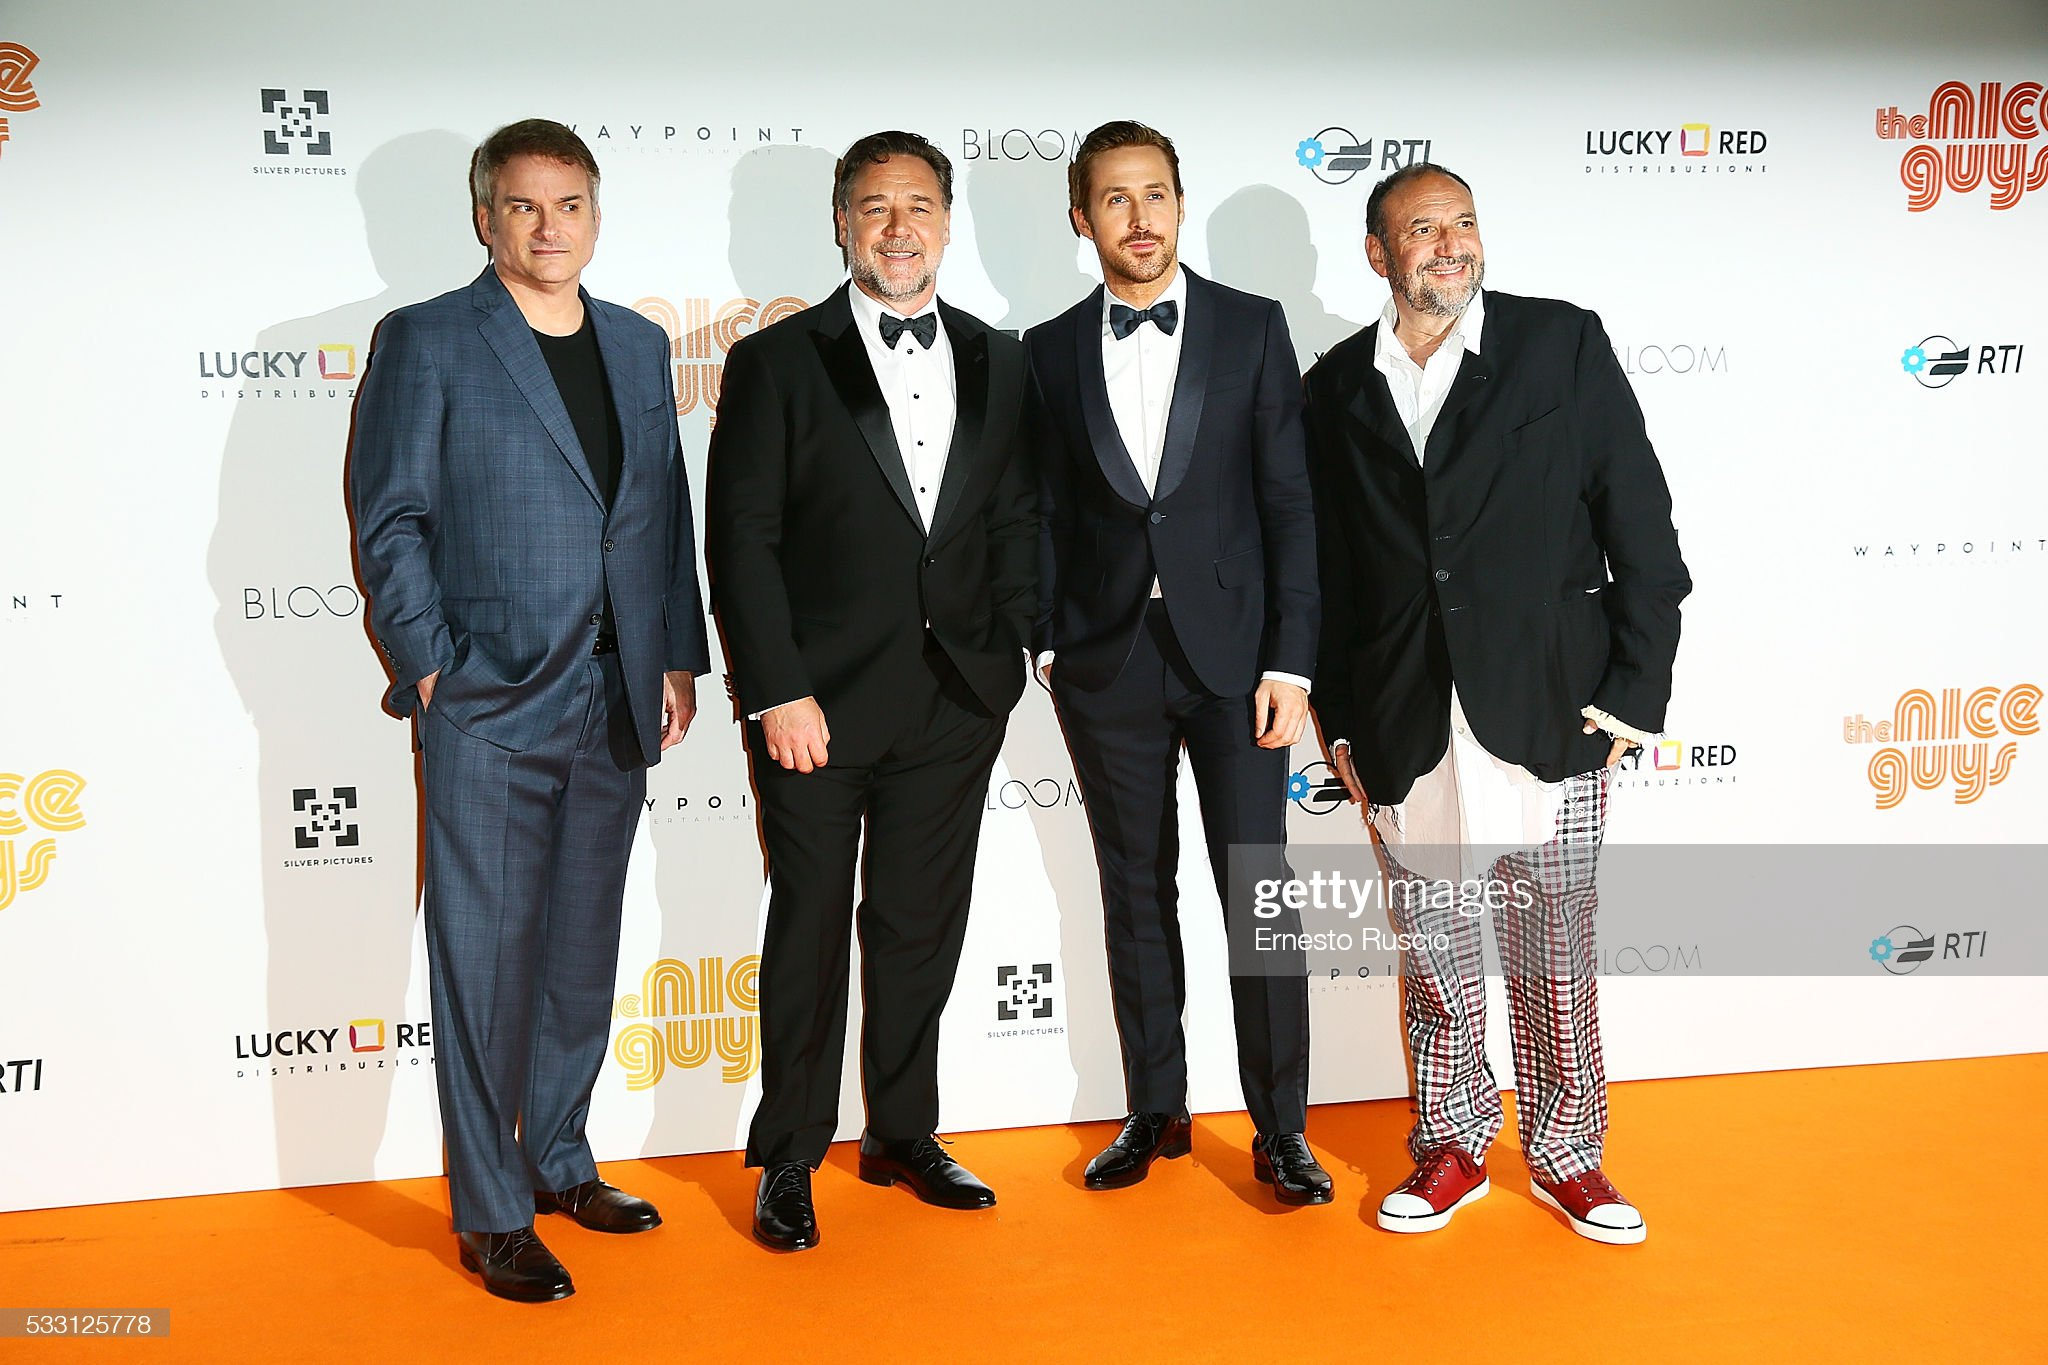 ¿Cuánto mide Russell Crowe? - Real height Shane-black-russell-crowe-ryan-gosling-and-joel-silver-attend-the-the-picture-id533125778?s=2048x2048